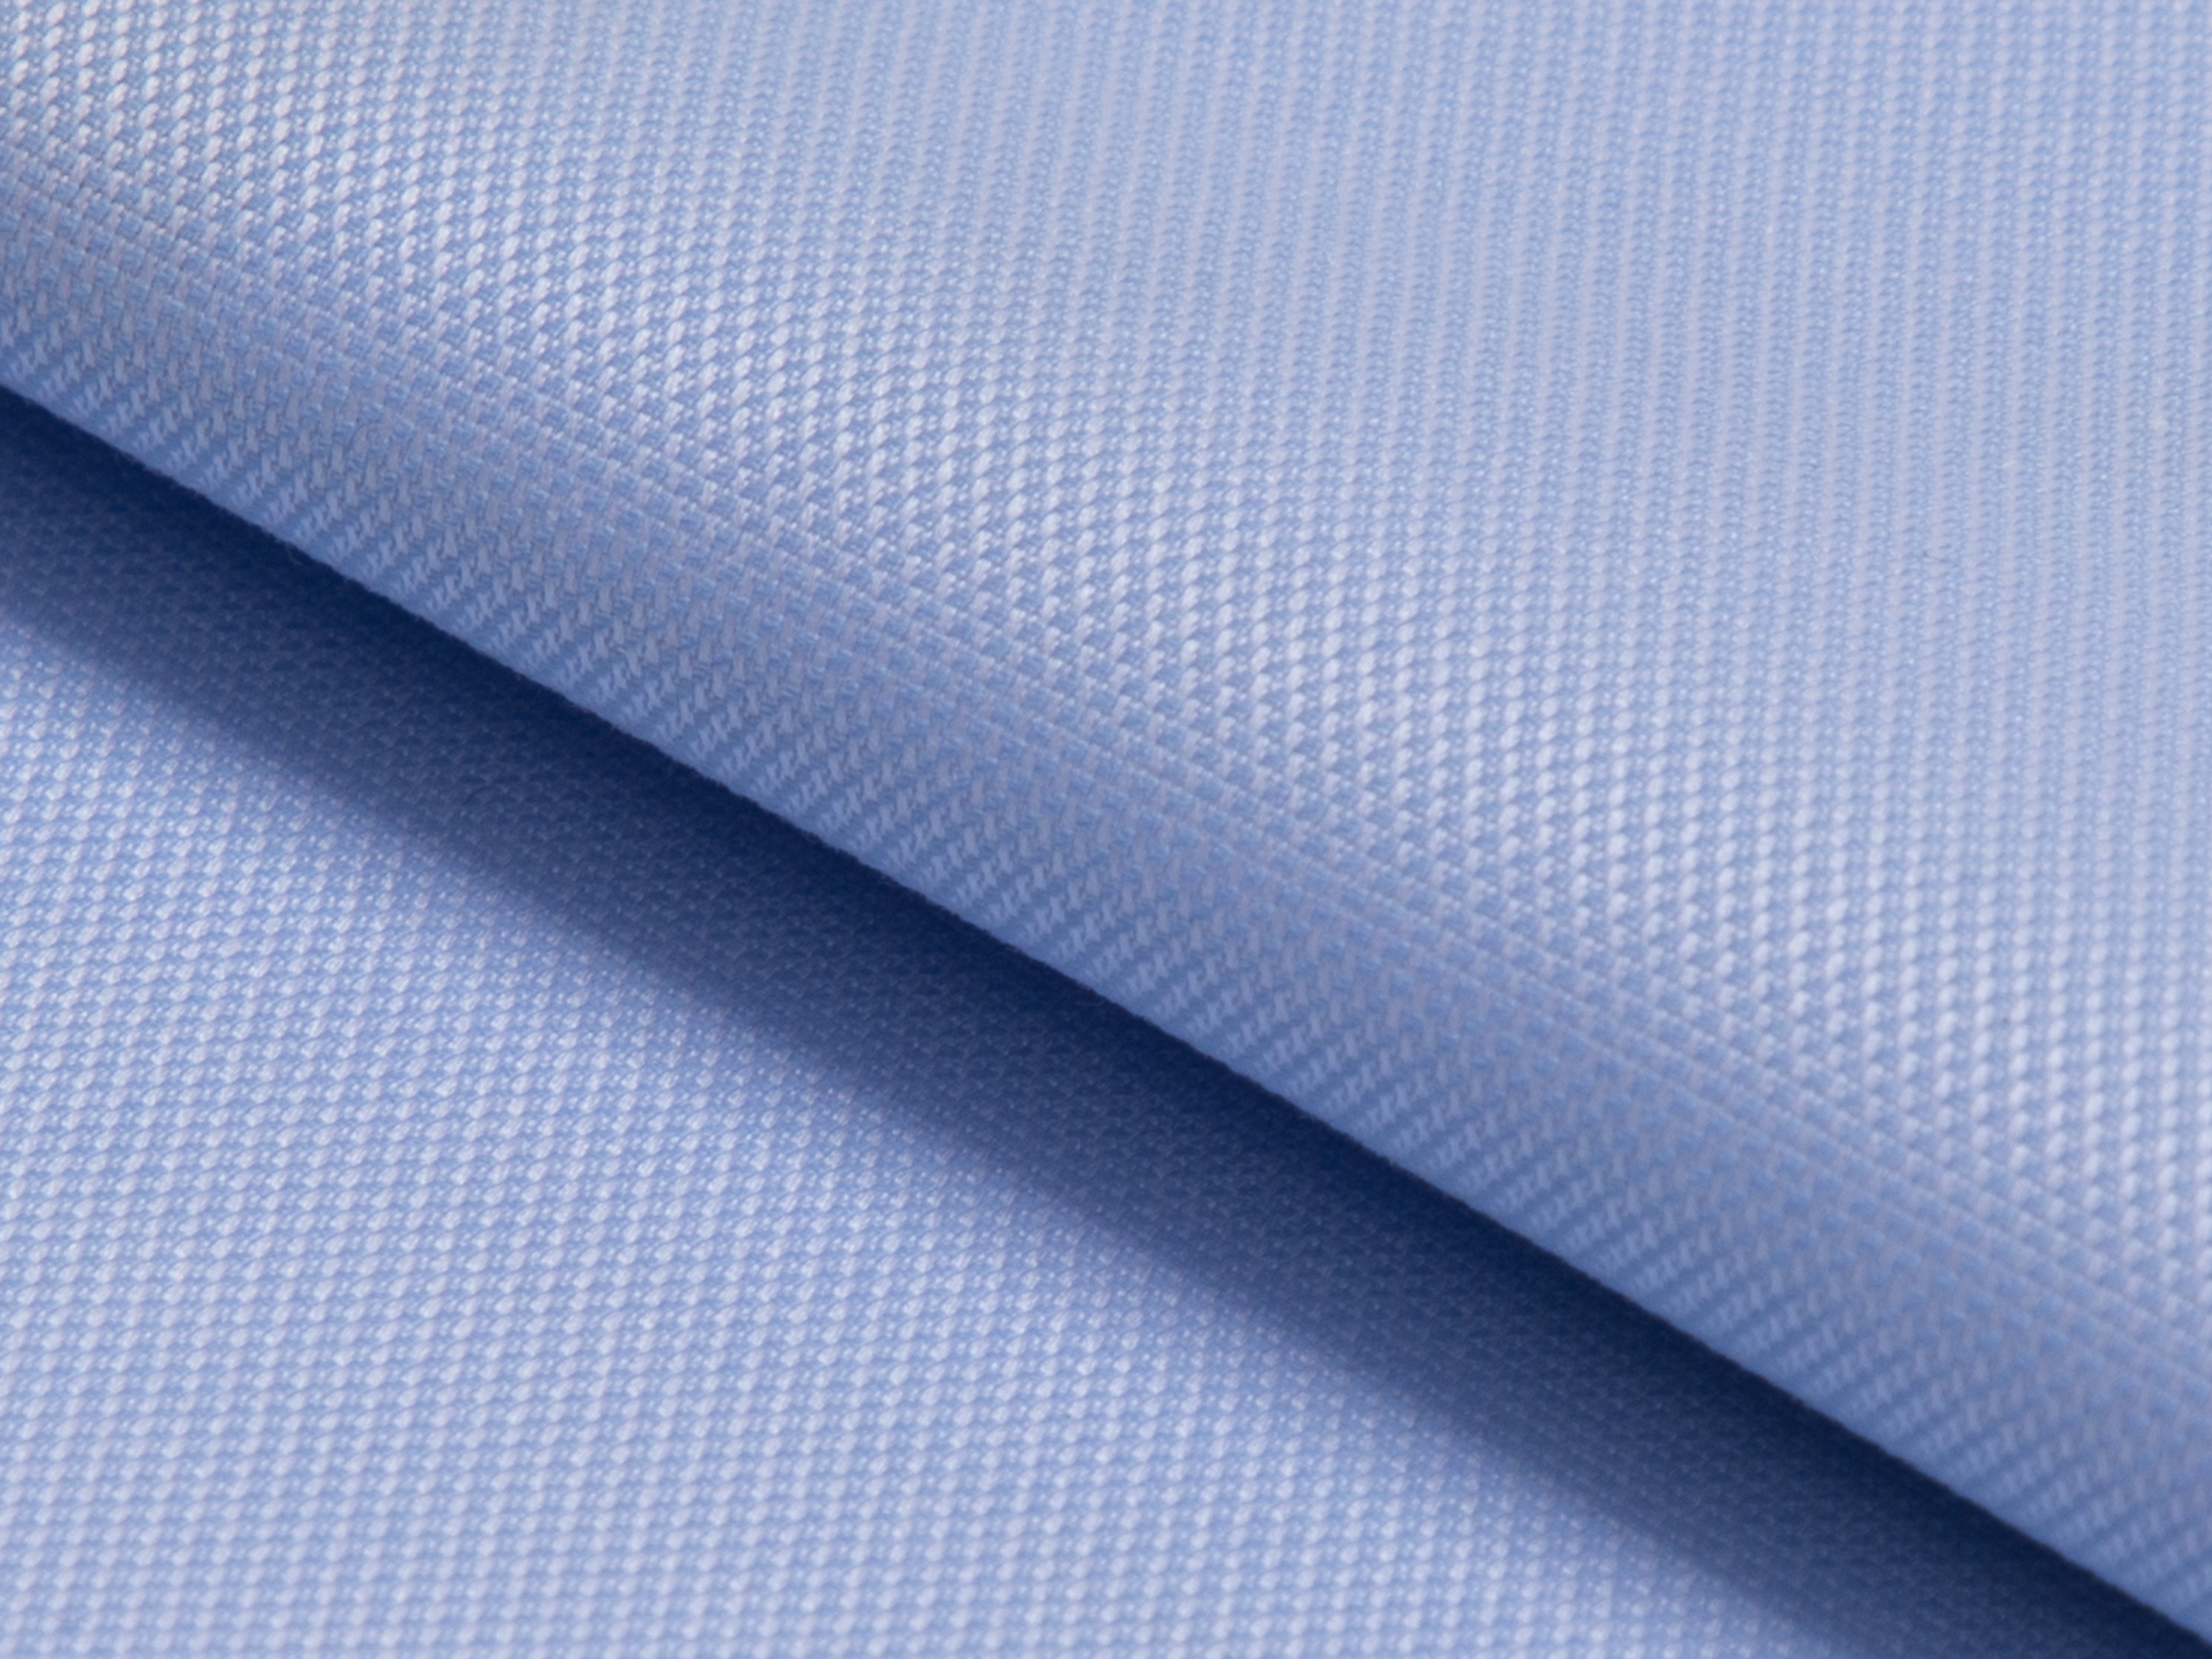 Buy tailor made shirts online - MAYFAIR - Pinpoint Light Blue